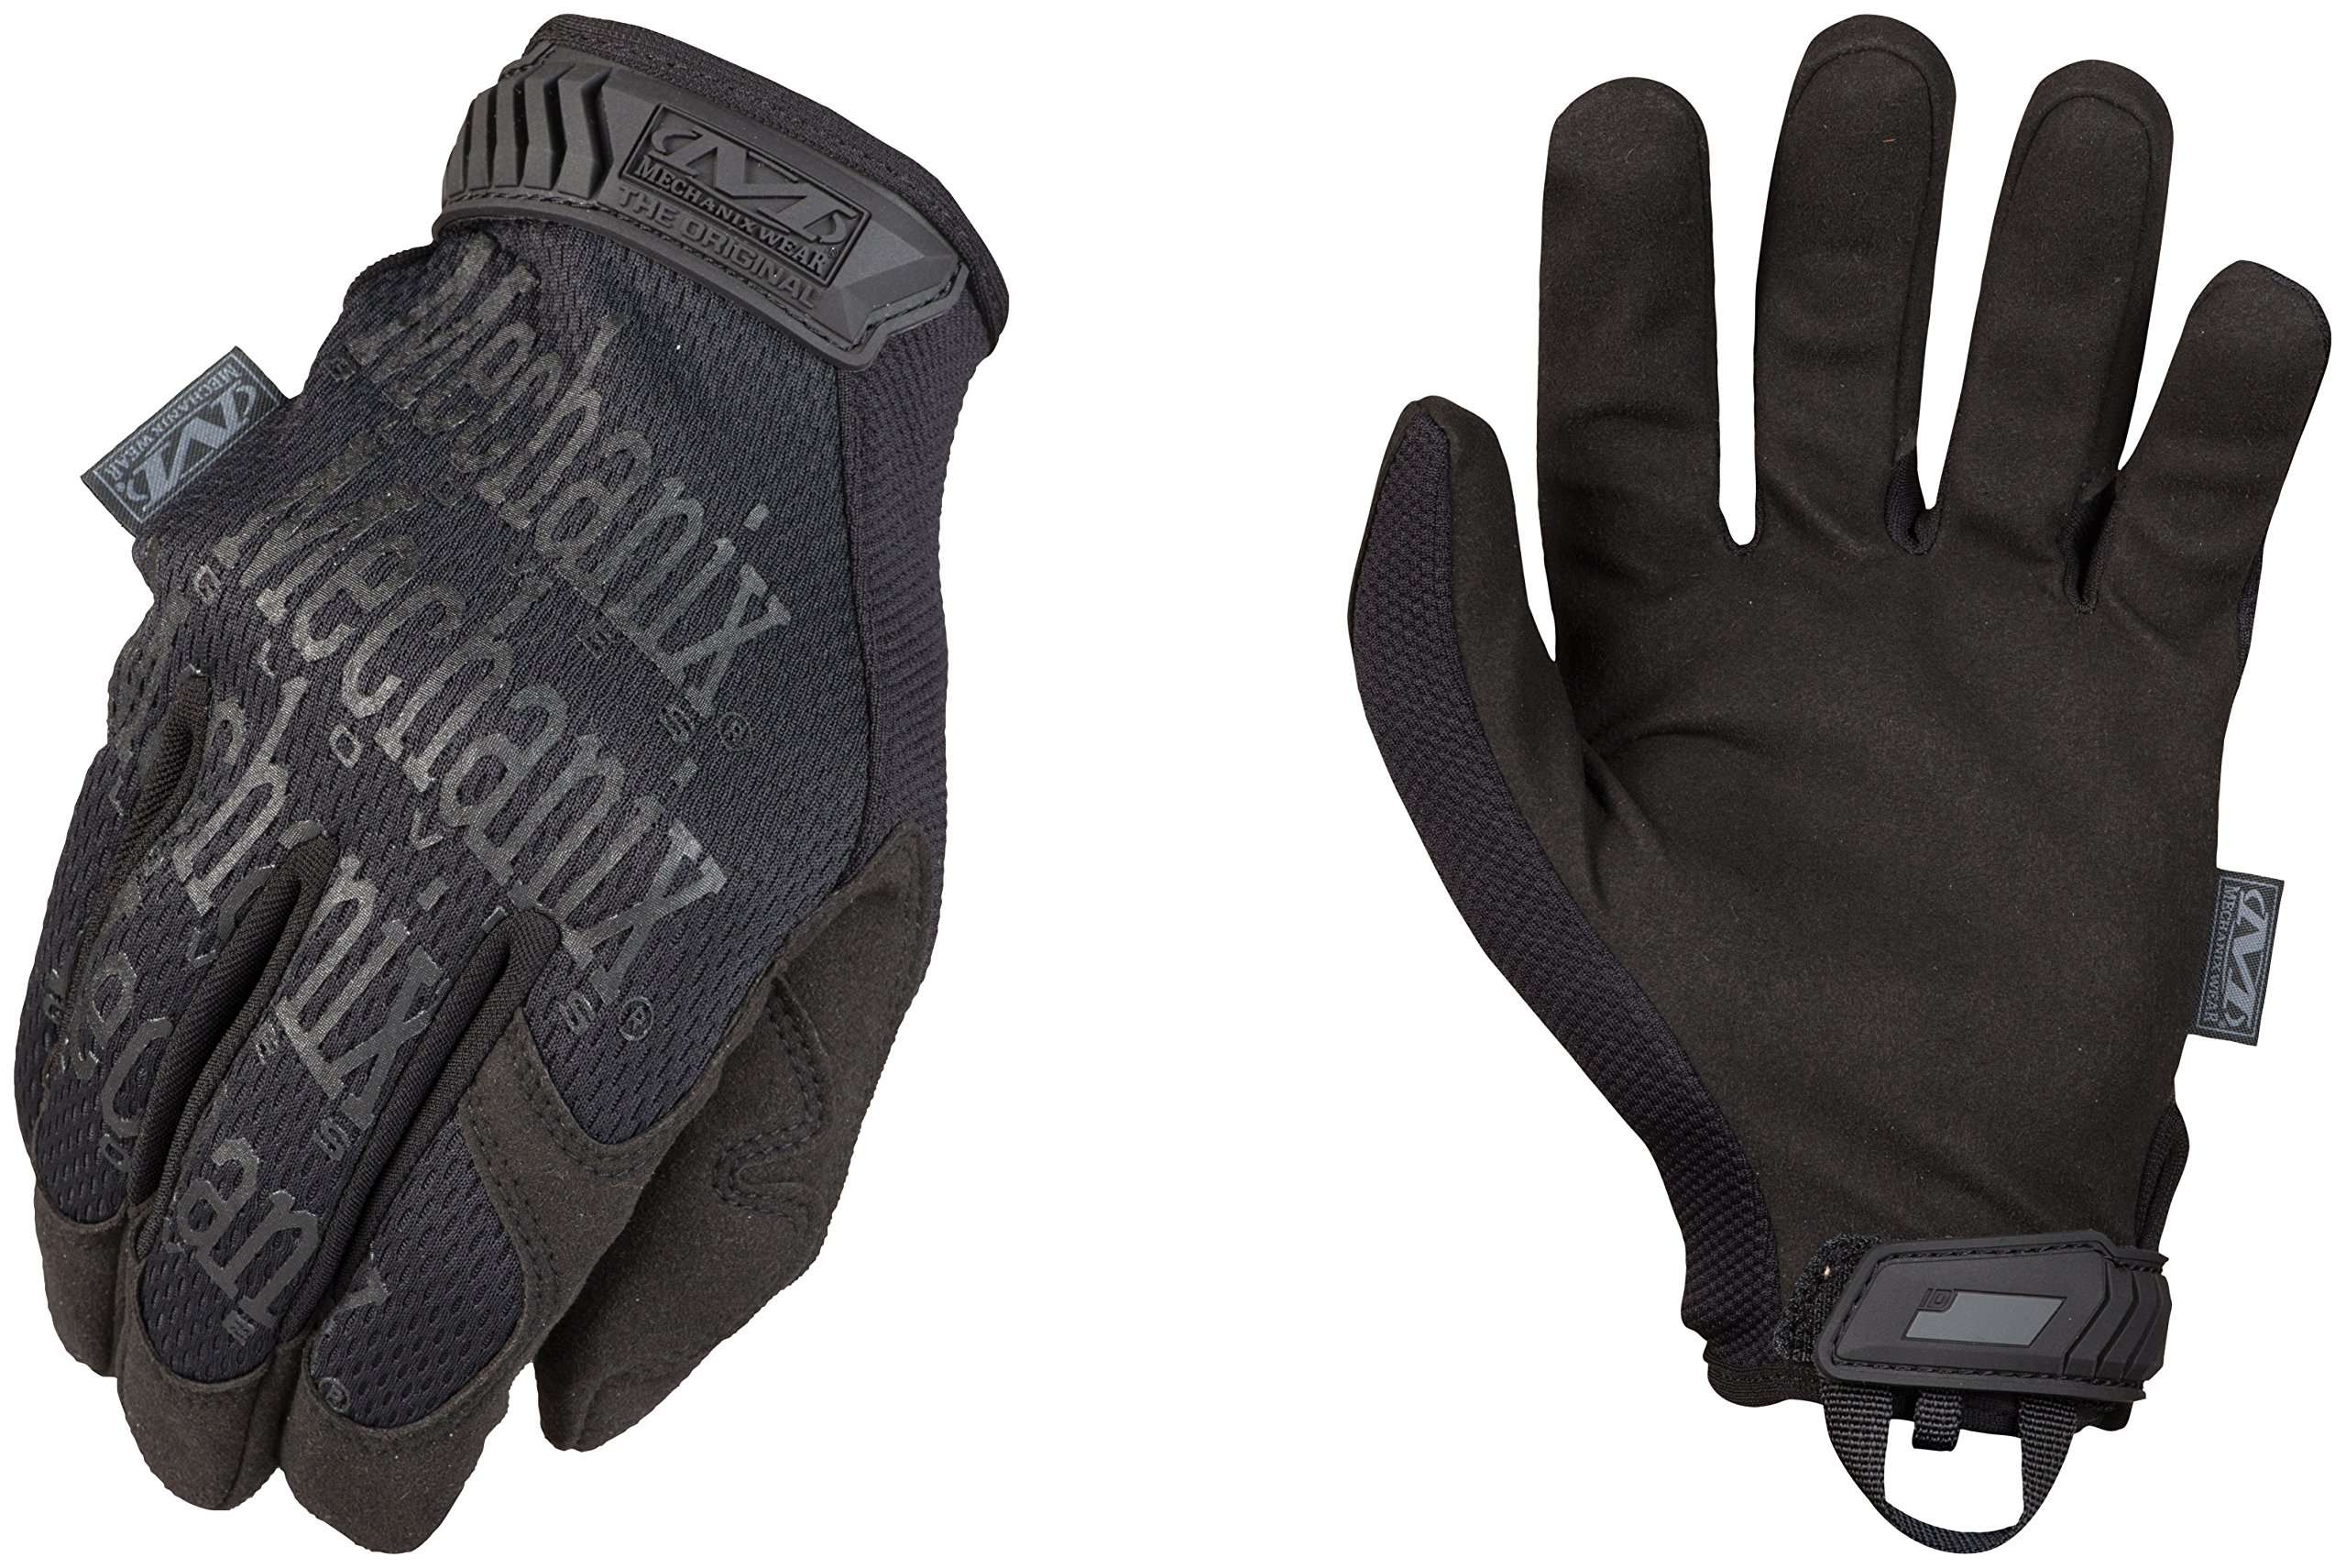 Covert Tactical Gloves from Mechanix Wear